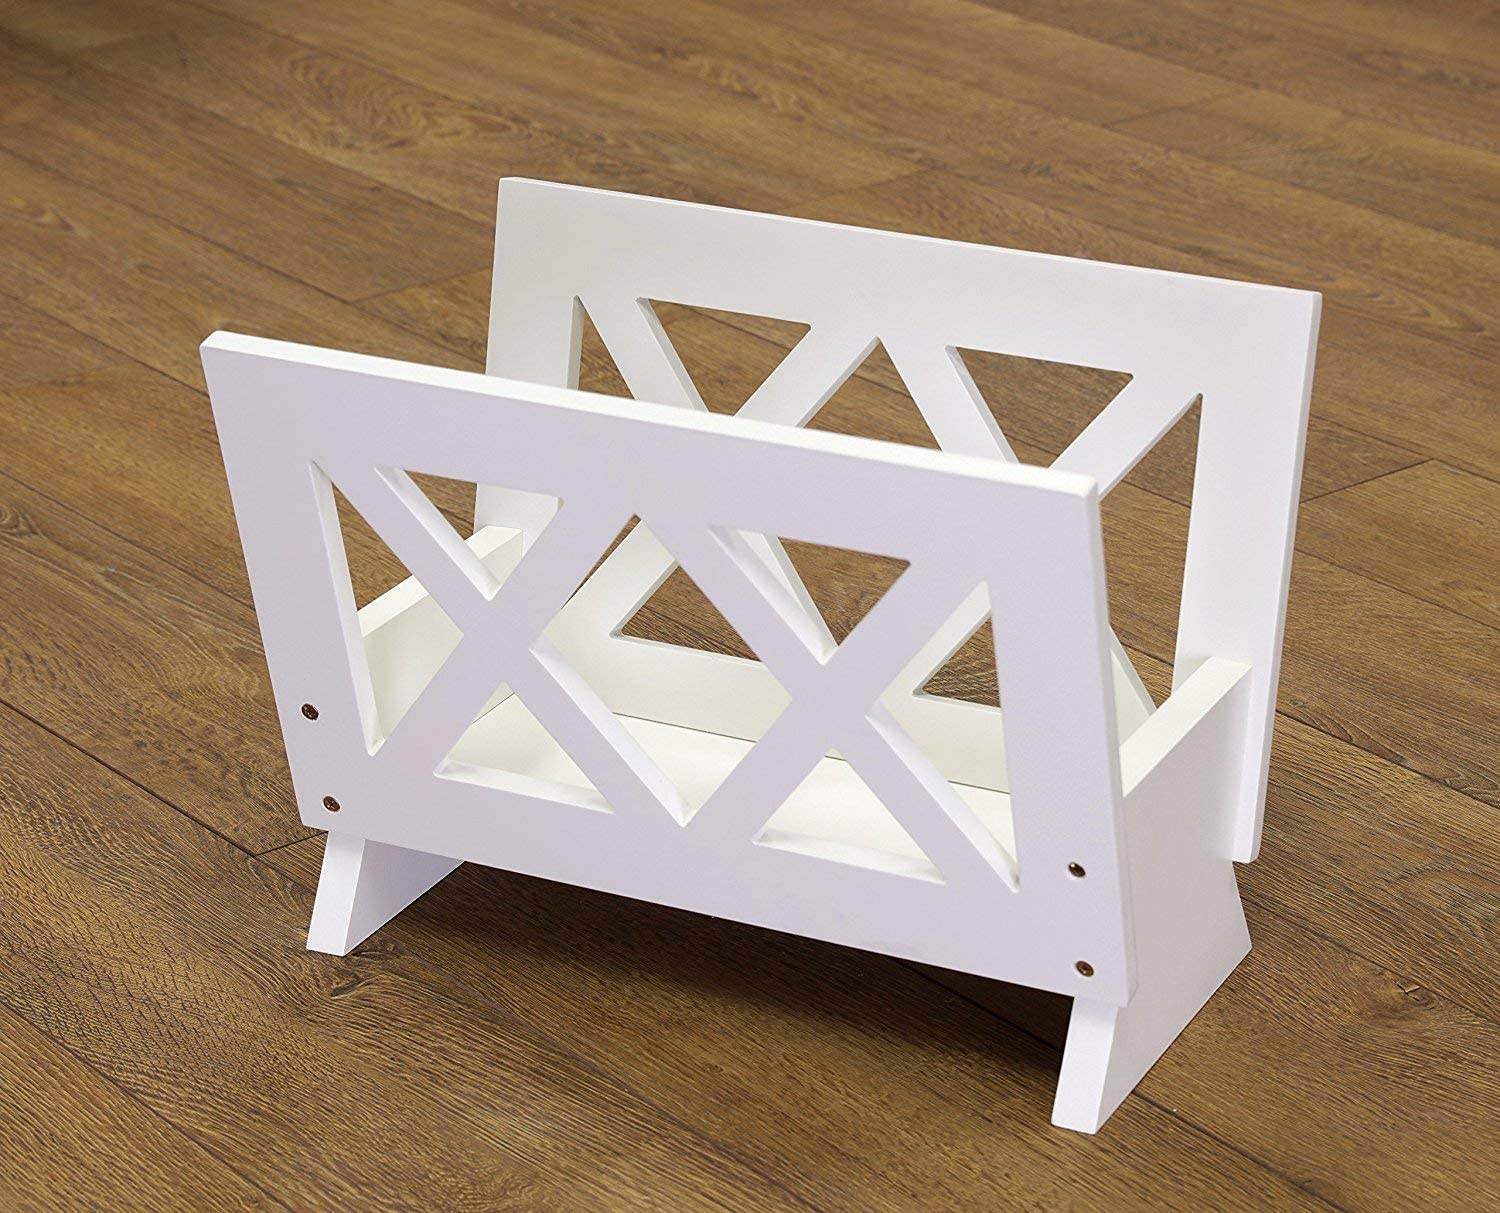 Frenchi Home Furnishing ContemporaryMagazine Rack, white